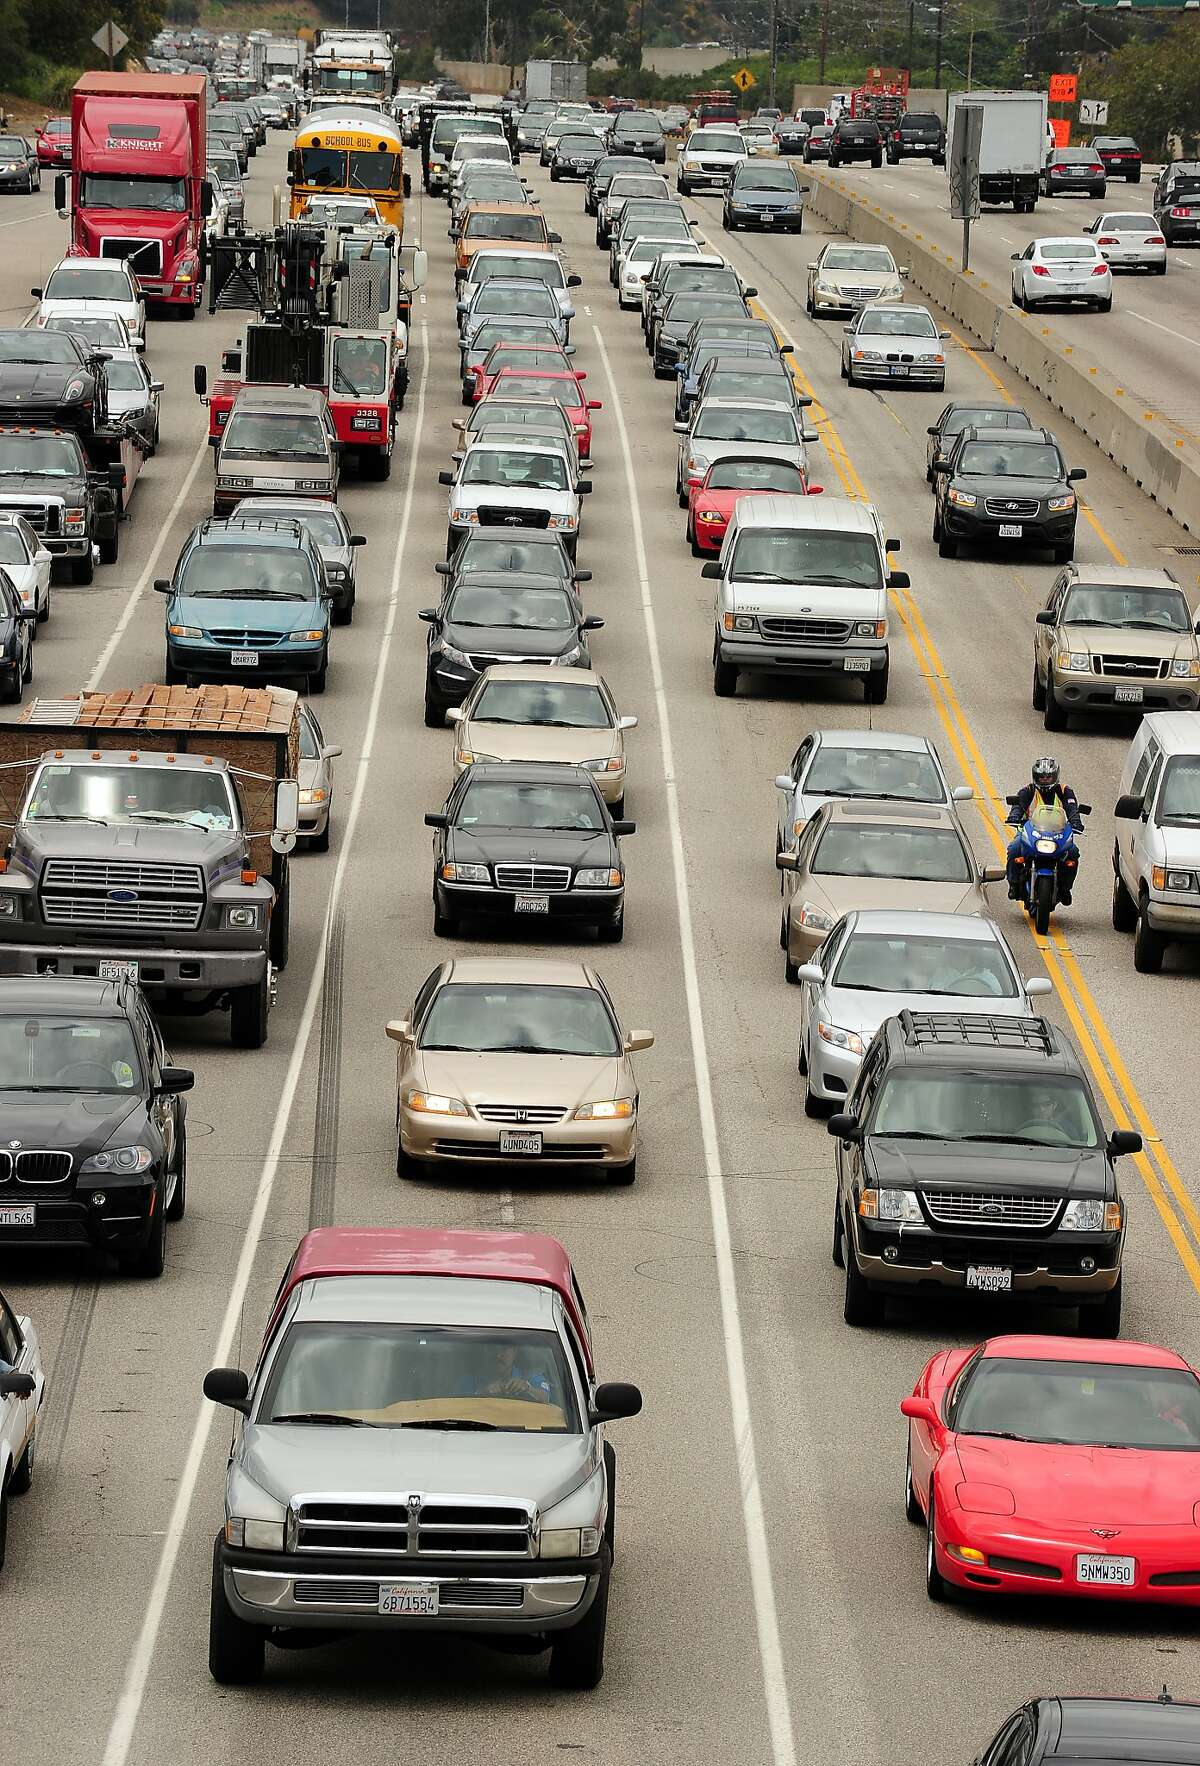 Los Angeles' Interstate 405 has long been the bane of commuters - and now it messes with self-driving cars, too.